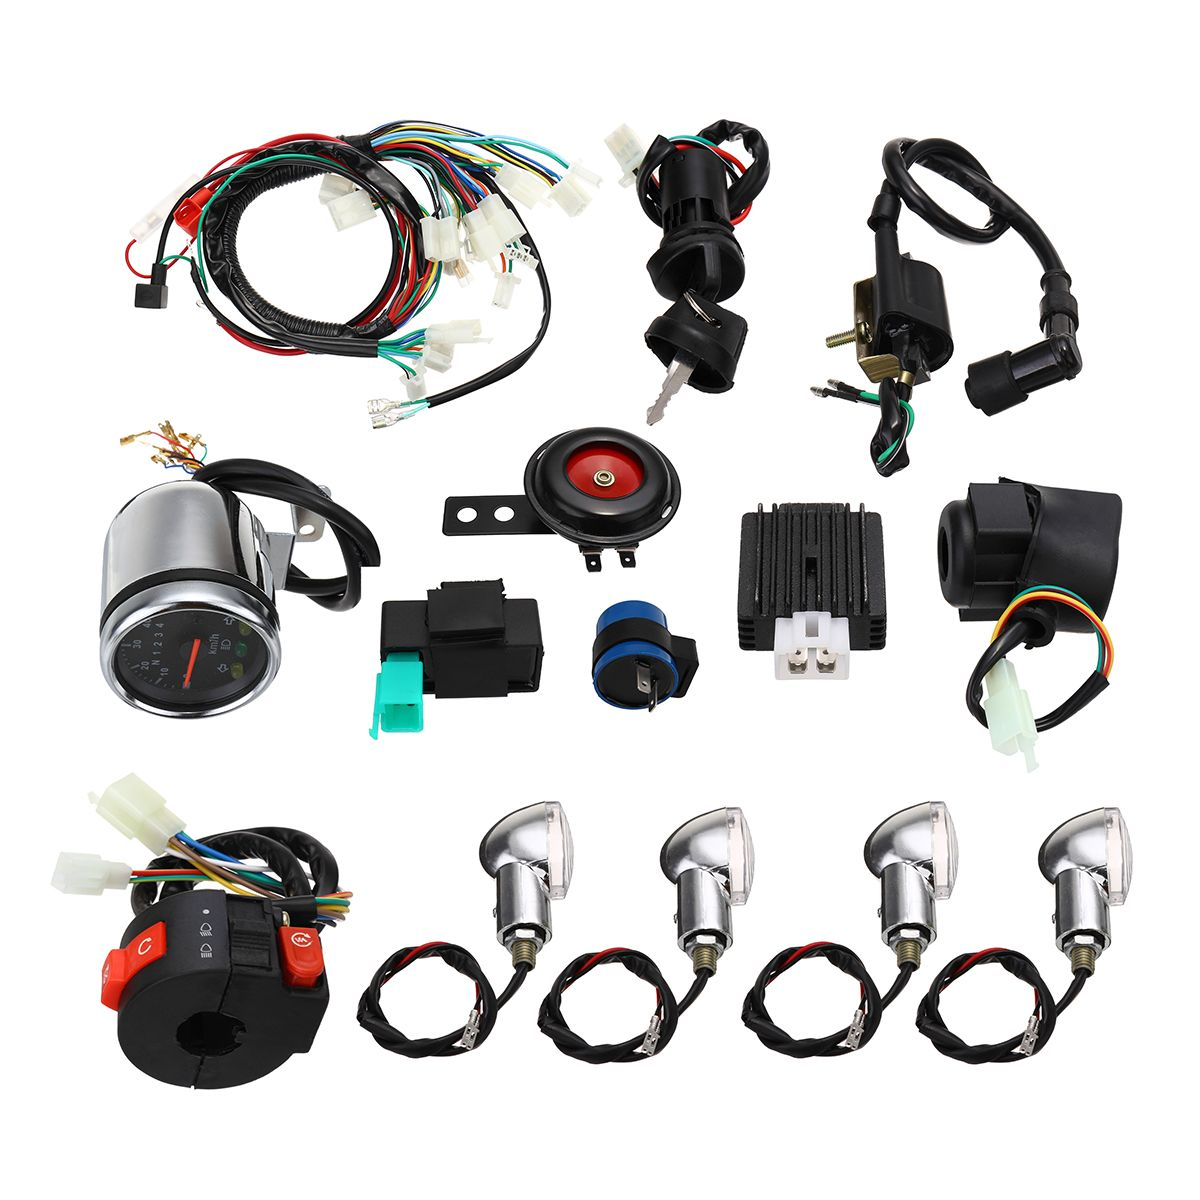 Us5399 Full Electric Start Engine Wiring Harness Loom For Cdi Atv Complete 110cc 125cc